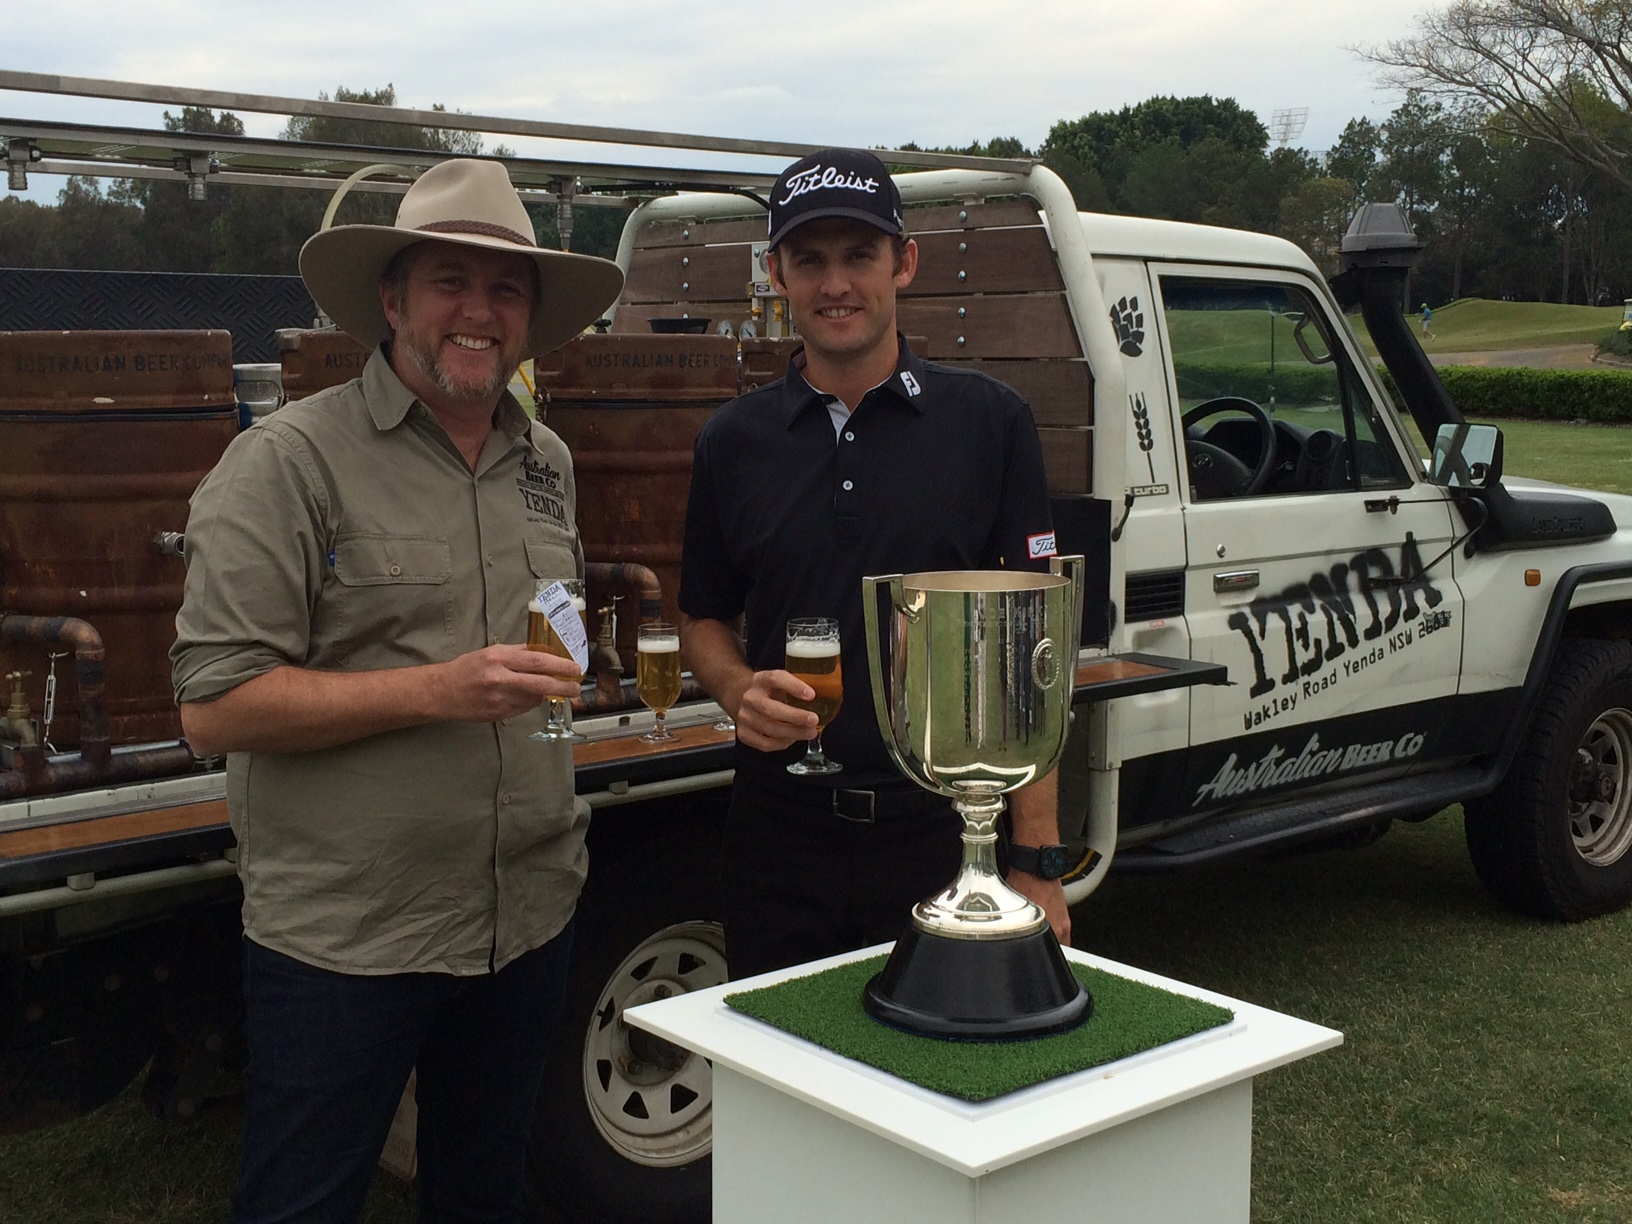 Sam Johnston from Australian Beer Company with Tour Pro Michael Sim and 'Andy the Landie' Yenda's mobile bar. (1)